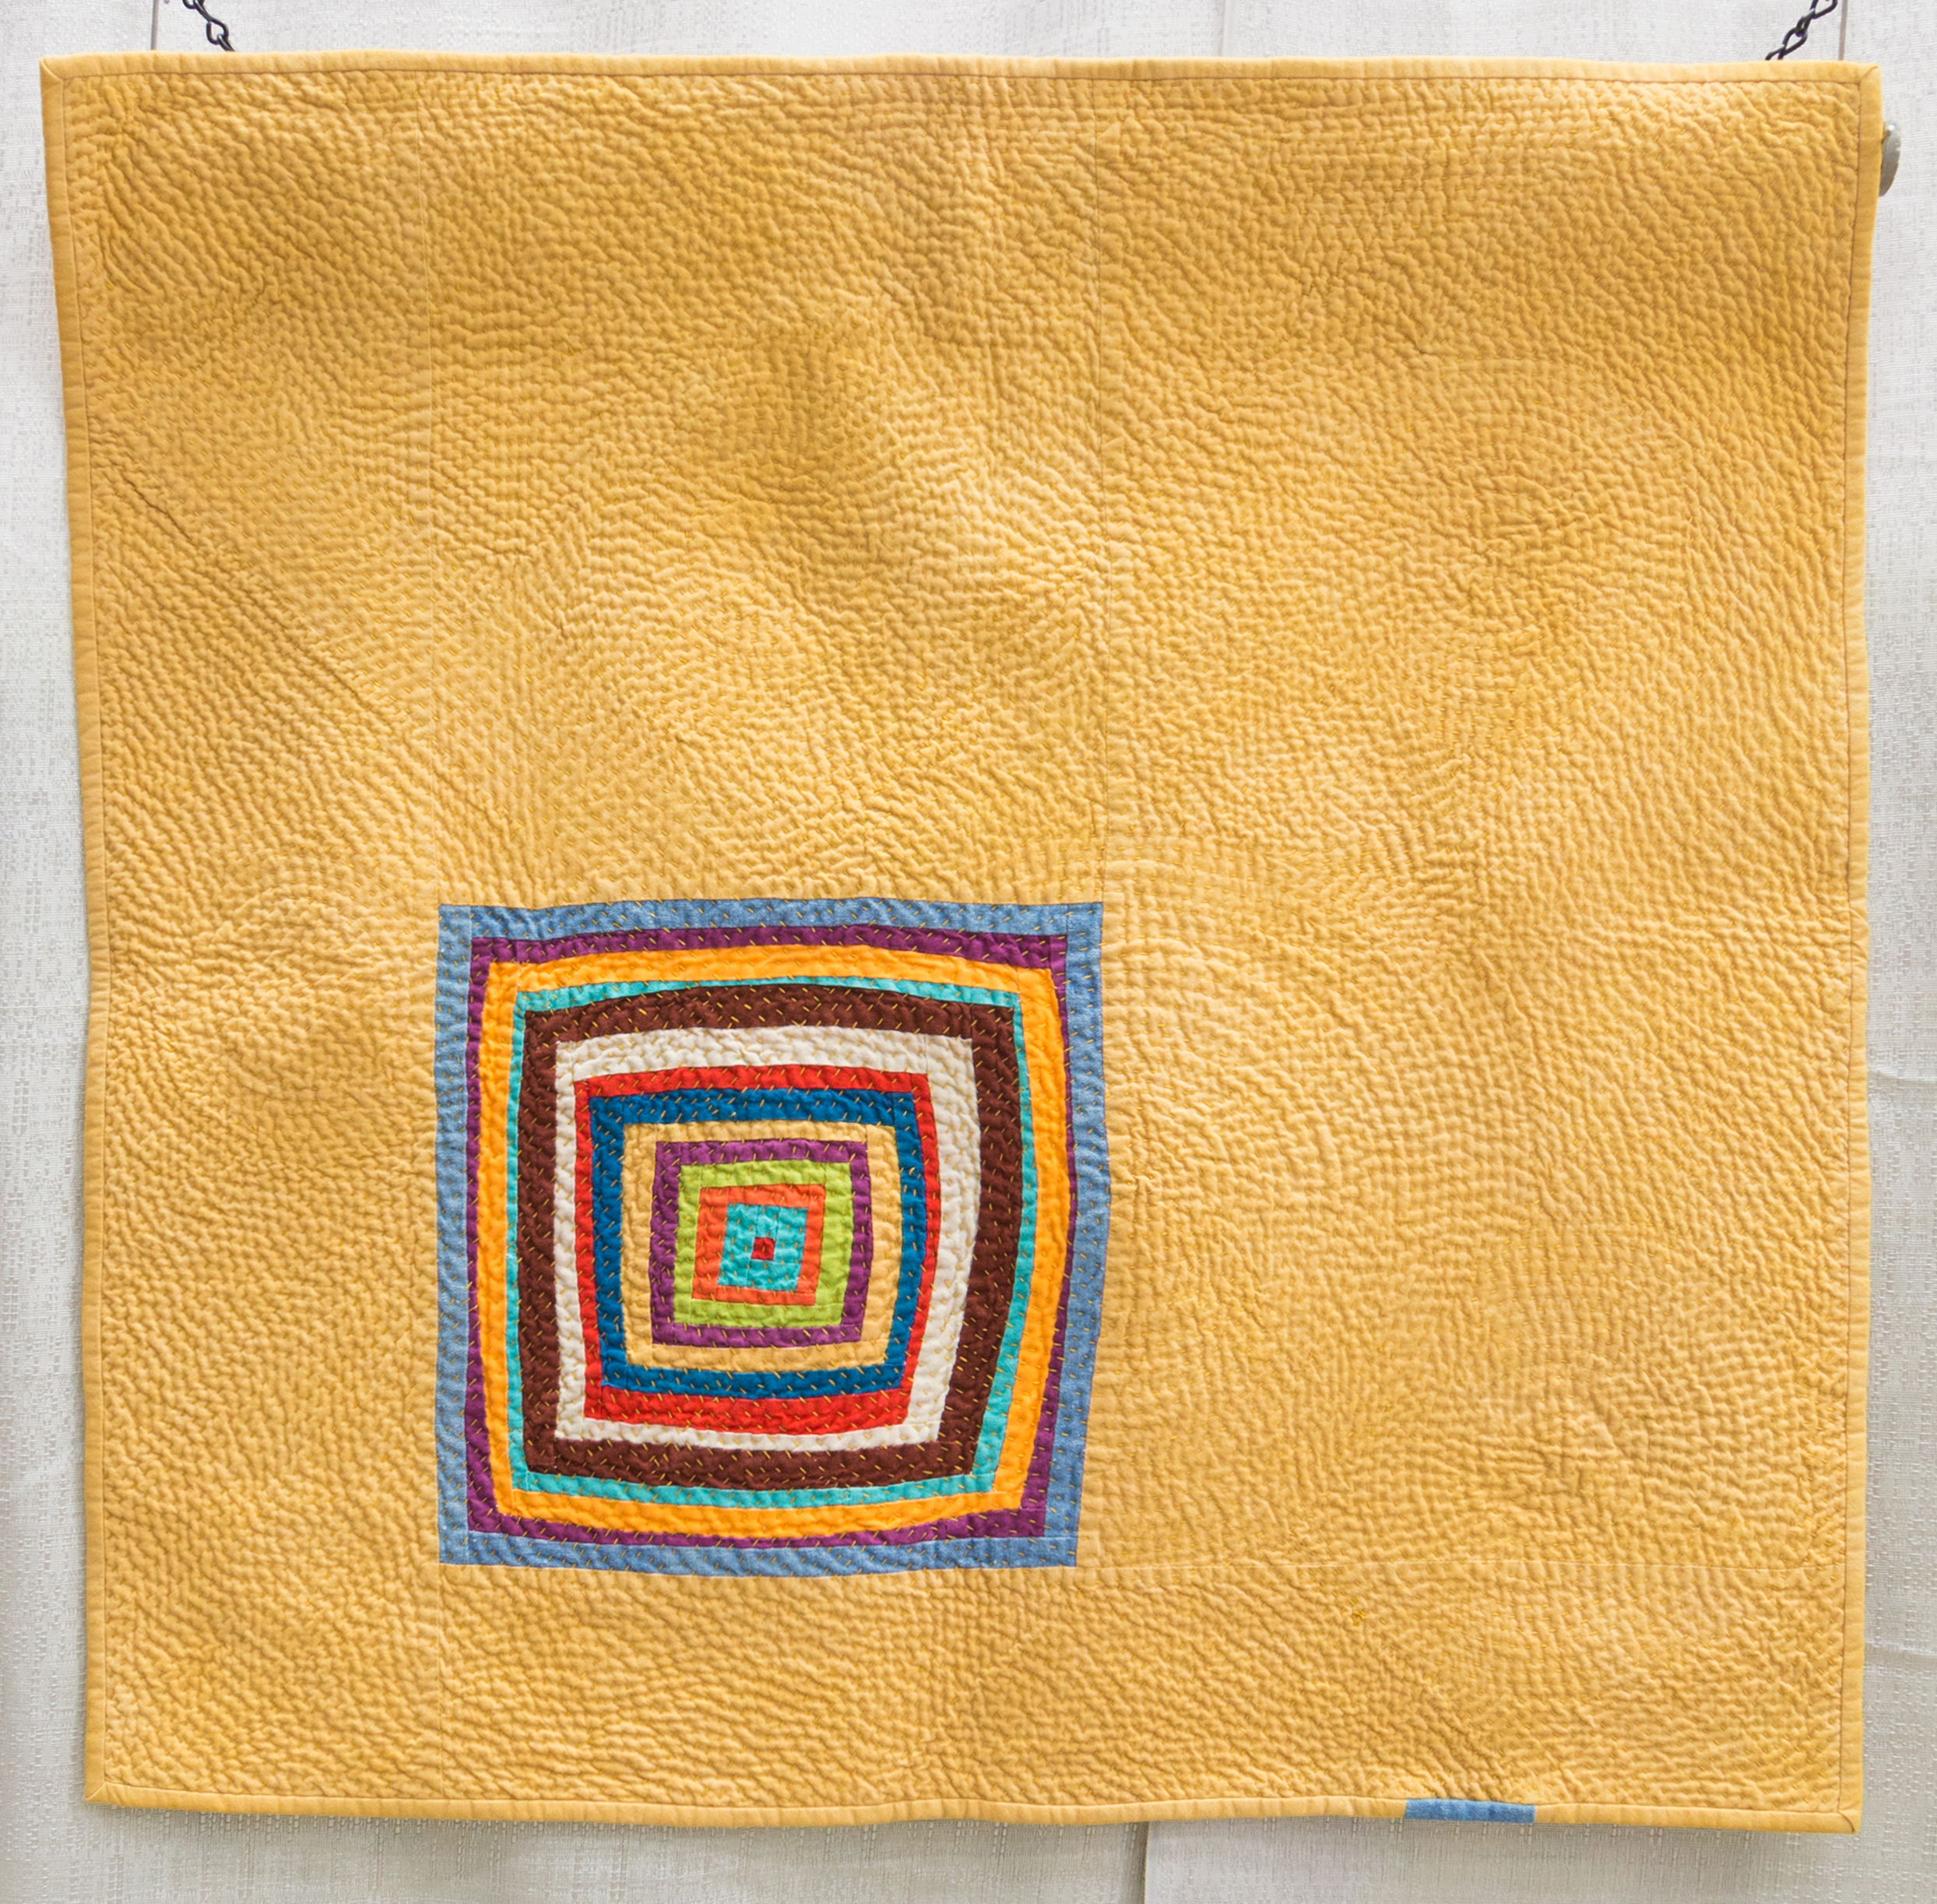 """2nd Place: In Wedowee  25"""" x 25"""" Pieced & Quilted by Chawne Kimber Easton, Pennsylvania Individual MQG Member"""